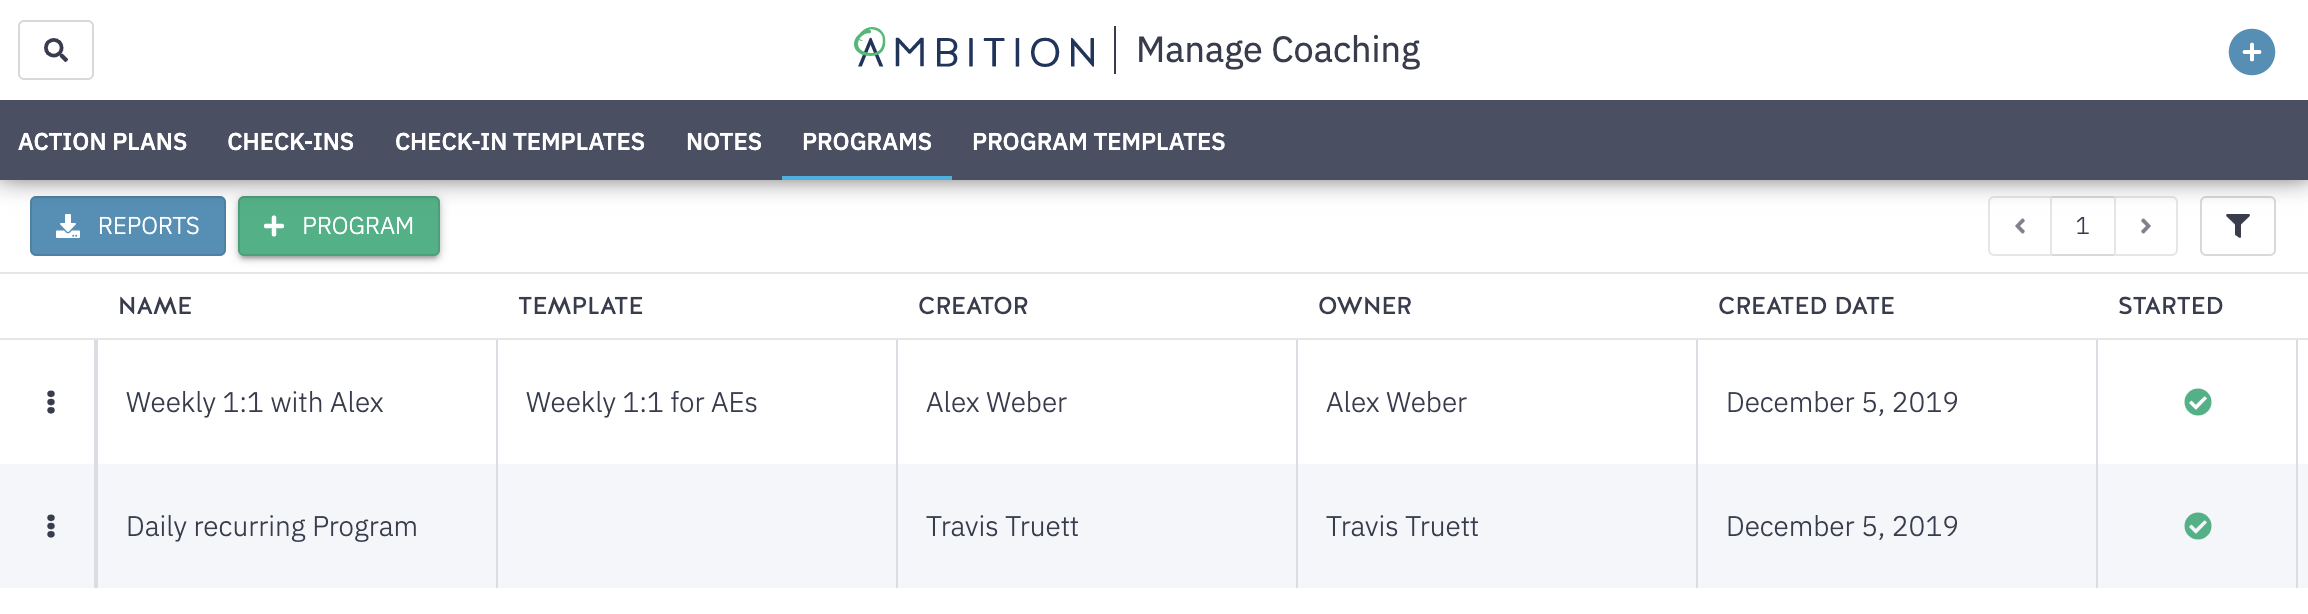 manage_coaching_programs.png